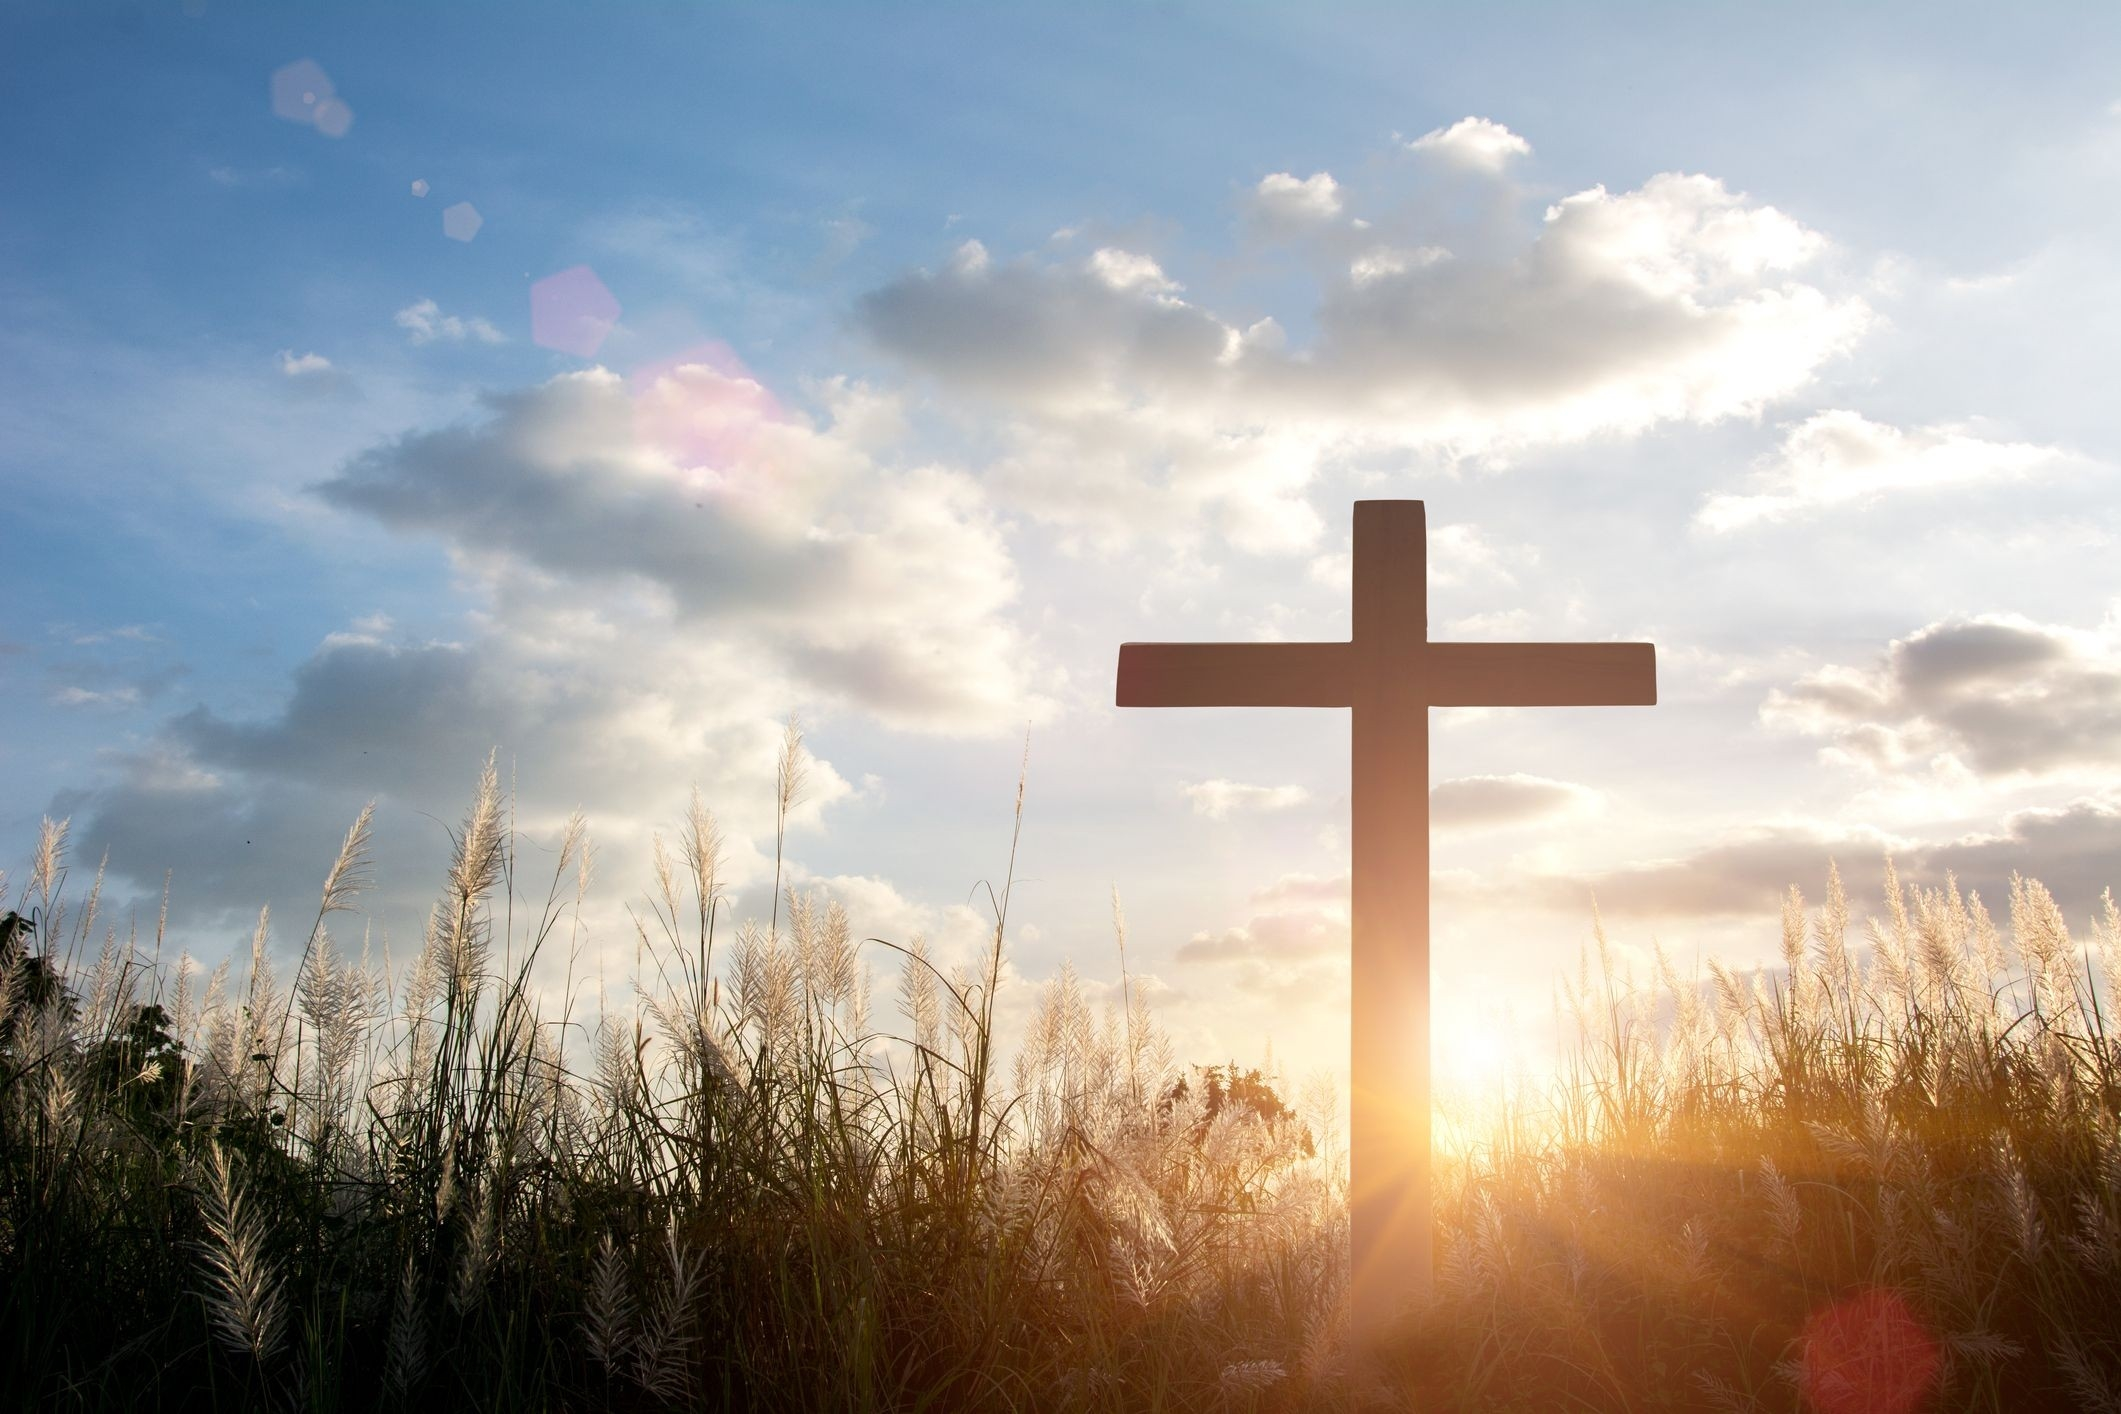 When Is Lent 2020? - When Does Lent Start And End In 2020?  Methodist Christian Sundays 2020